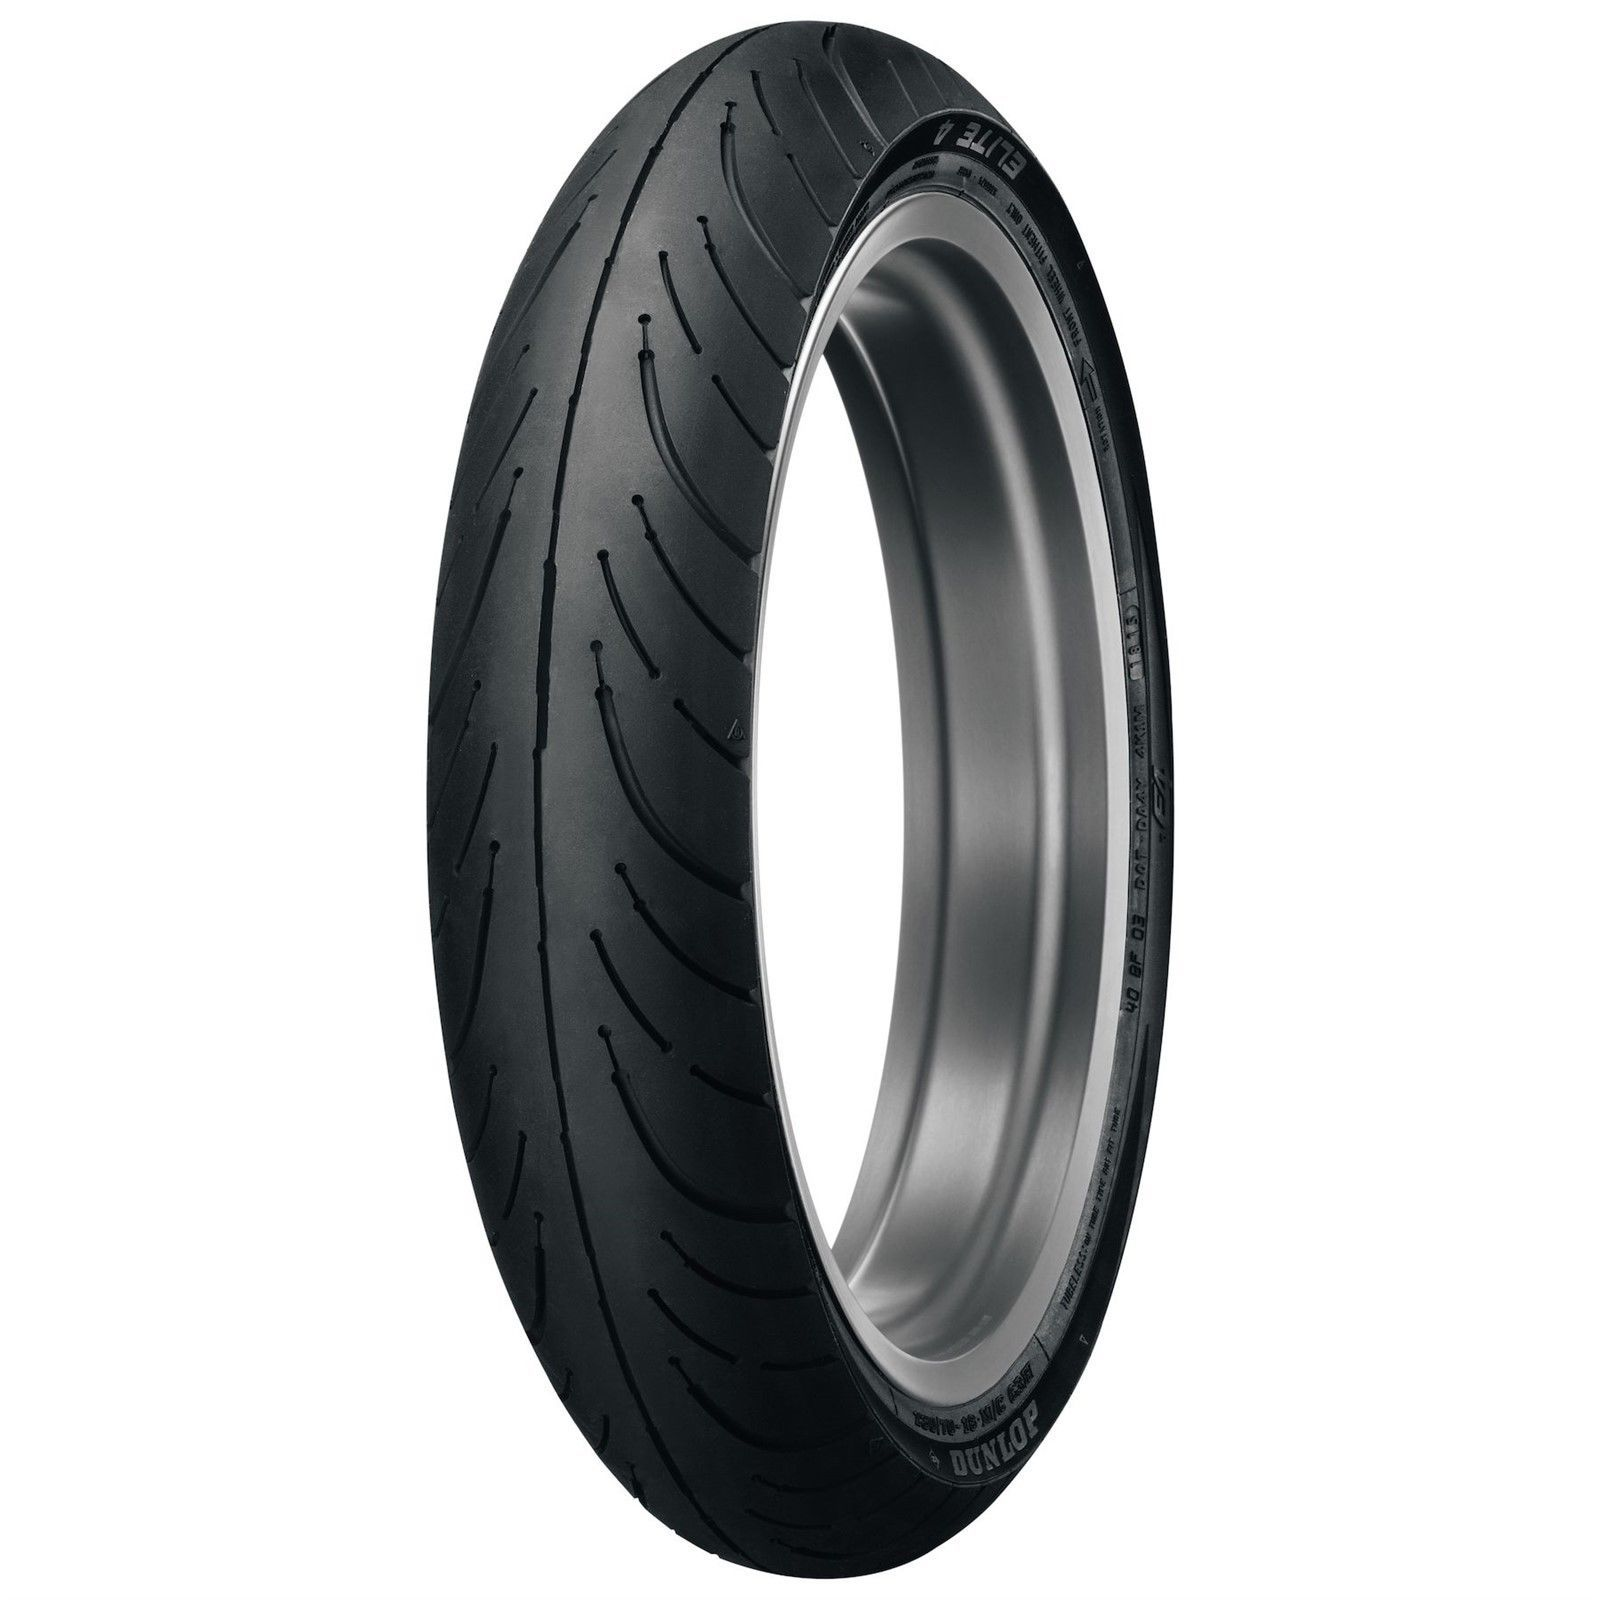 New Dunlop Elite 4 150/80-16 Bias Front Motorcycle Tire 71H High Mileage